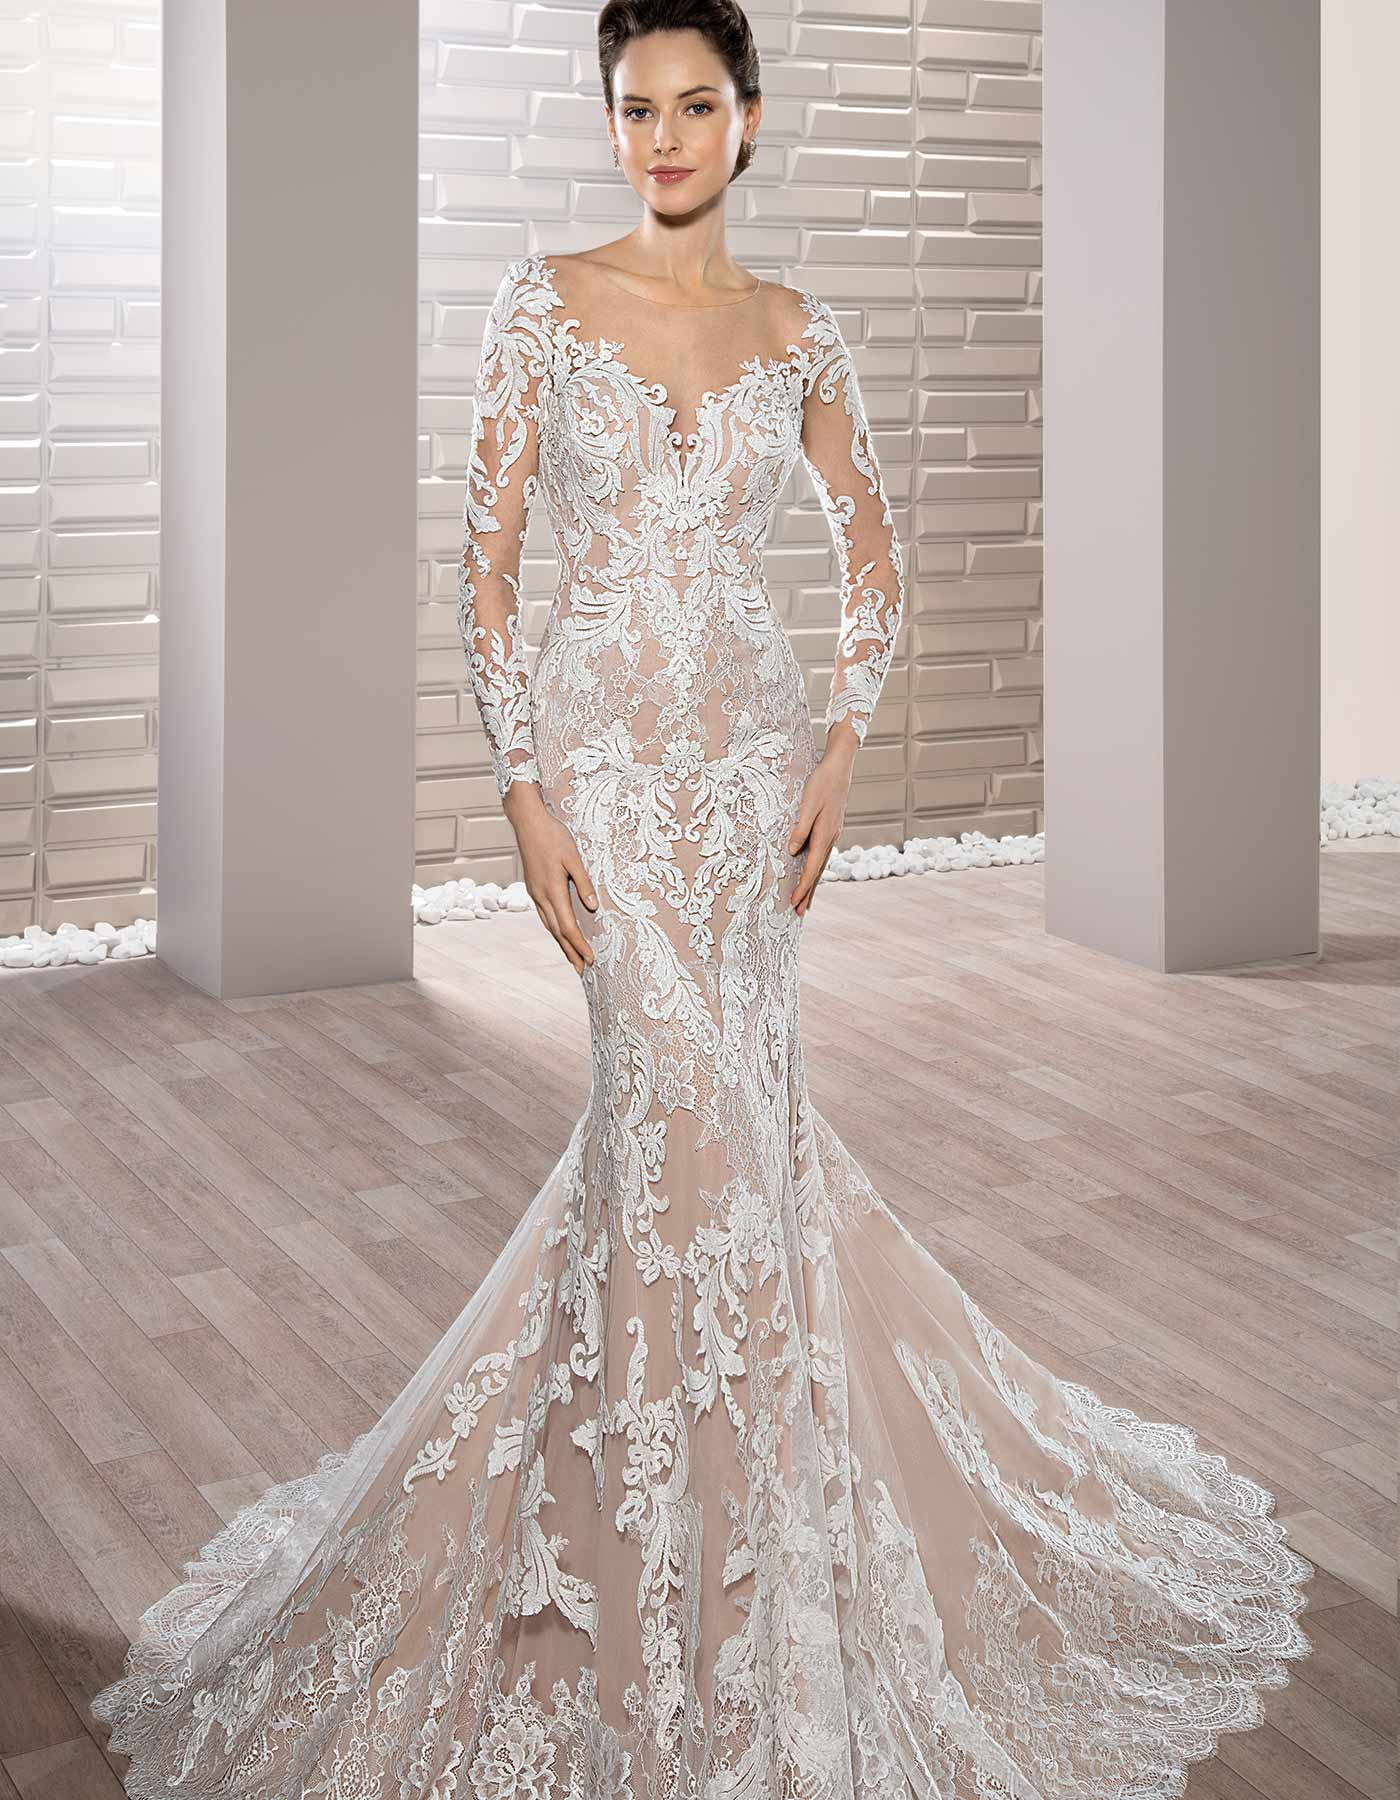 5 wedding dresses featuring bold lace by Raffaele Ciuca